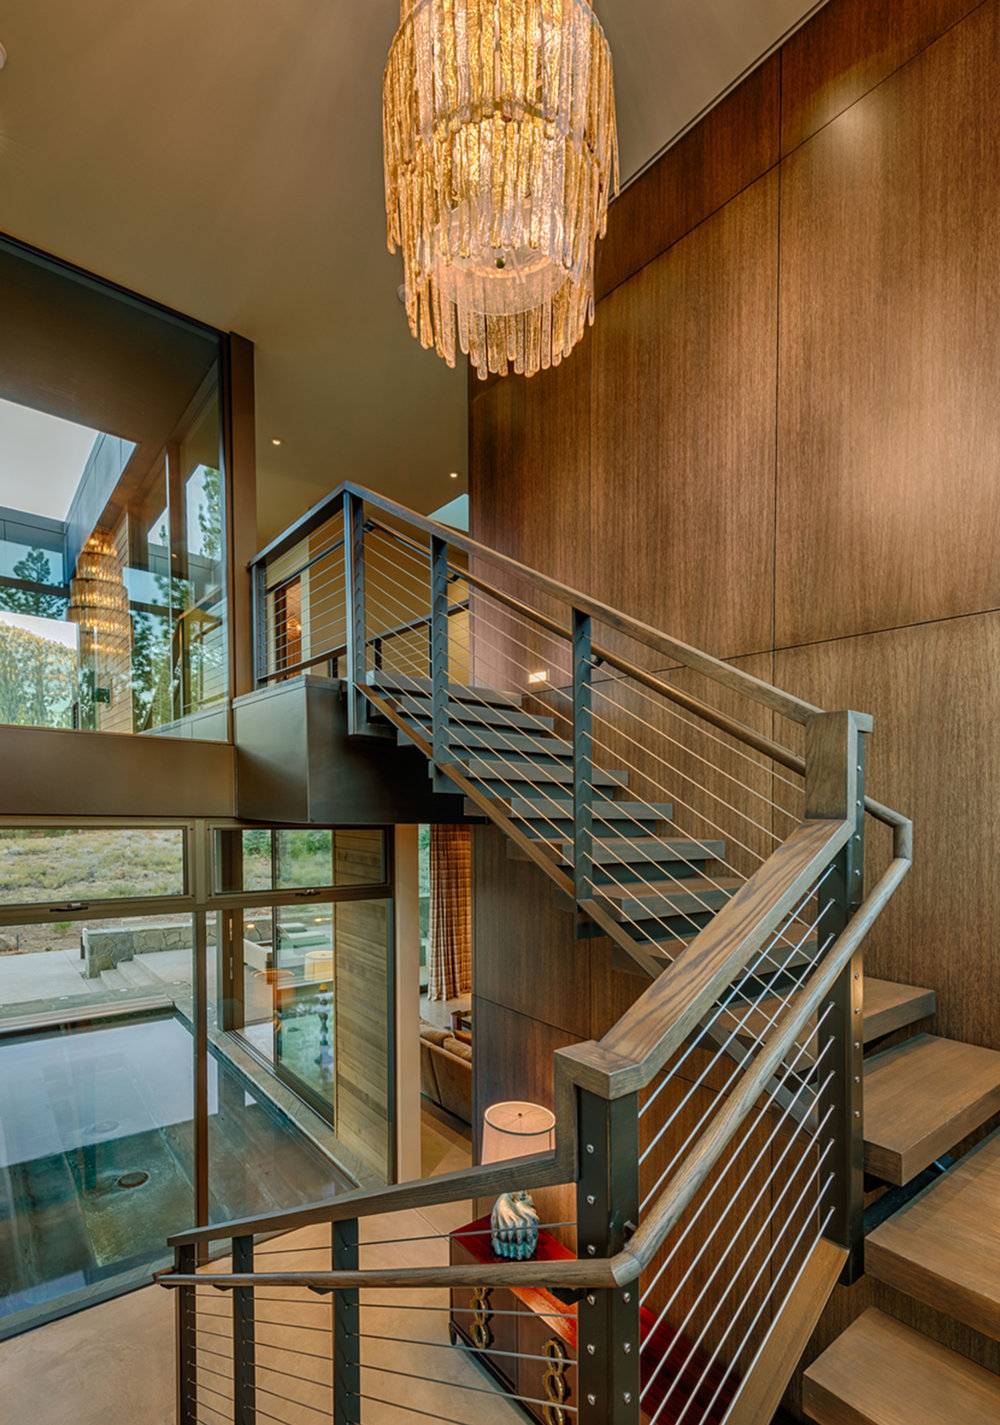 Lot 403_Staircase_Metal Railing_Wood Panel Walls_Chandelier.jpg